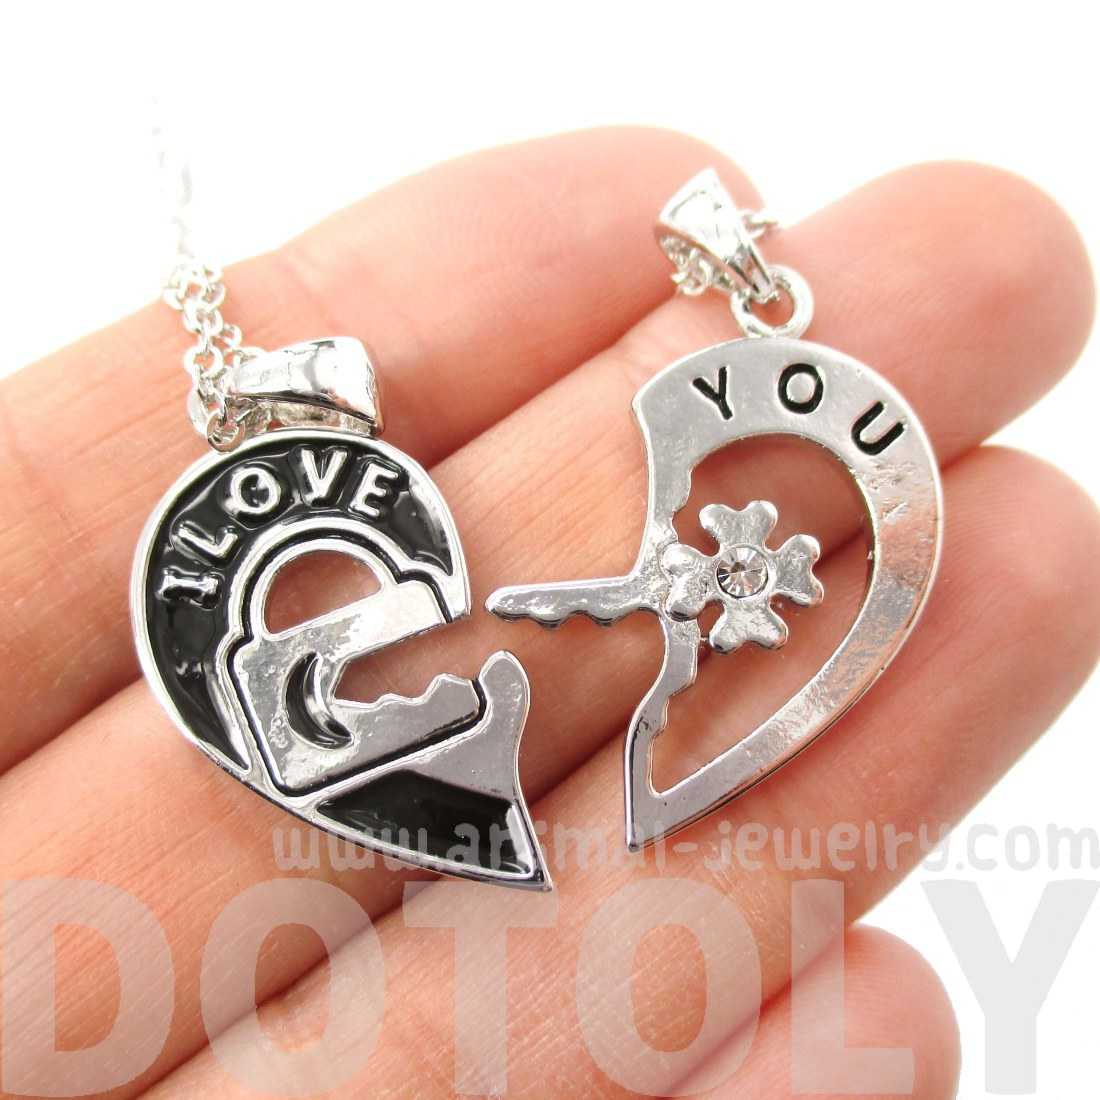 Couples 2 piece heart shaped i love you lock and key pendant couples 2 piece heart shaped i love you lock and key pendant necklace in mozeypictures Image collections